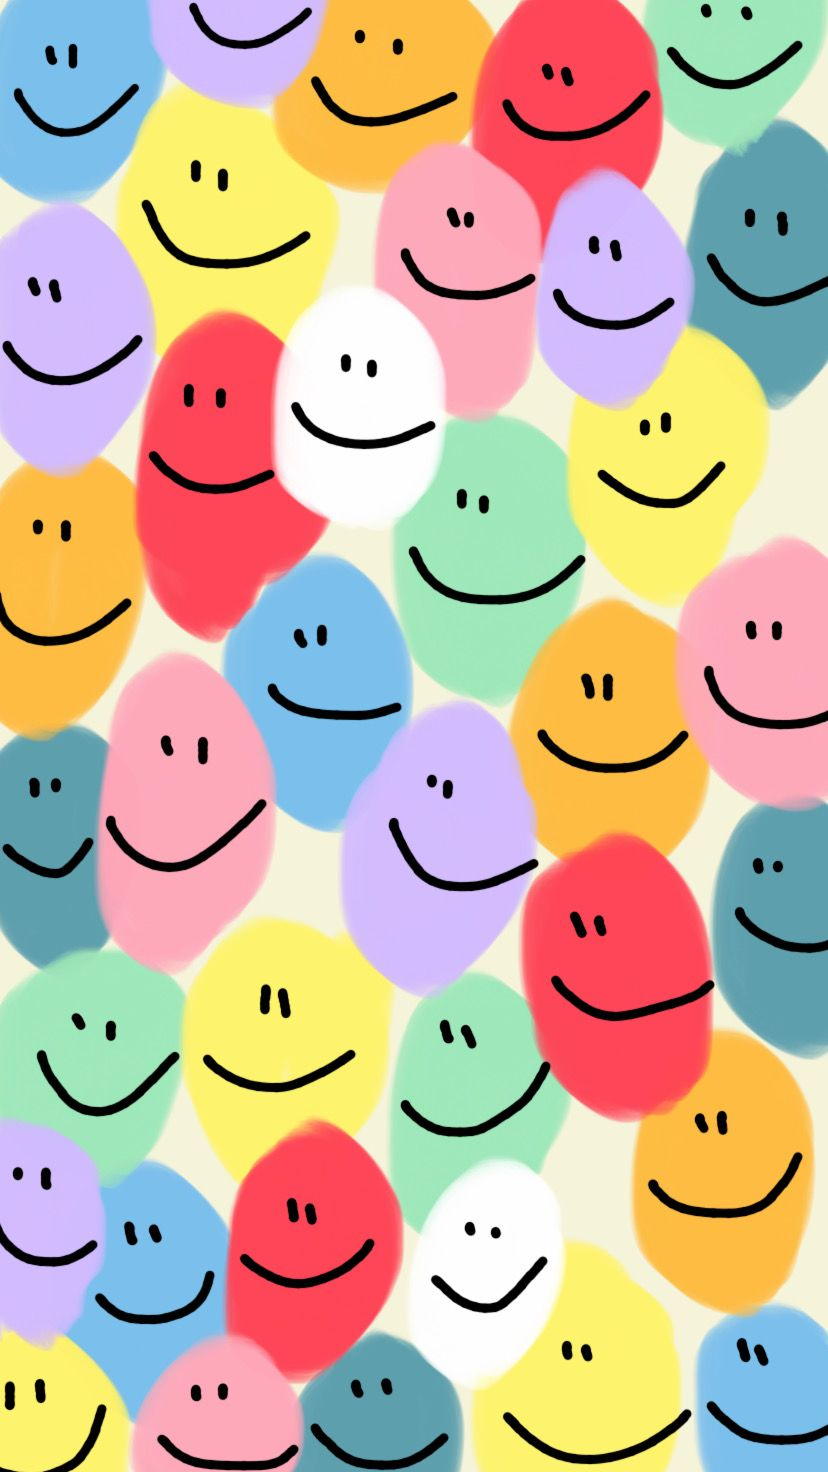 Smiley Face Wallpaper Cute Patterns Wallpaper Art Collage Wall Iphone Background Wallpaper